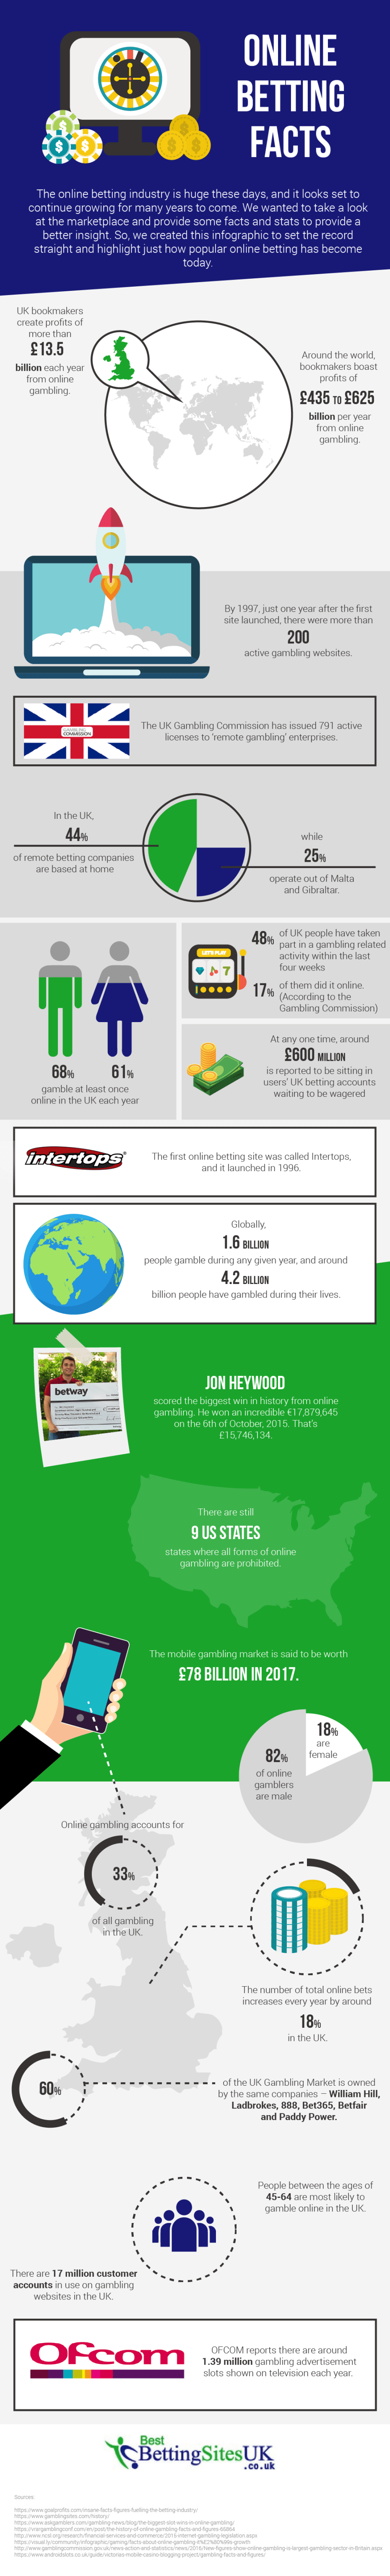 infographic to demonstrate the incredible growth of online betting